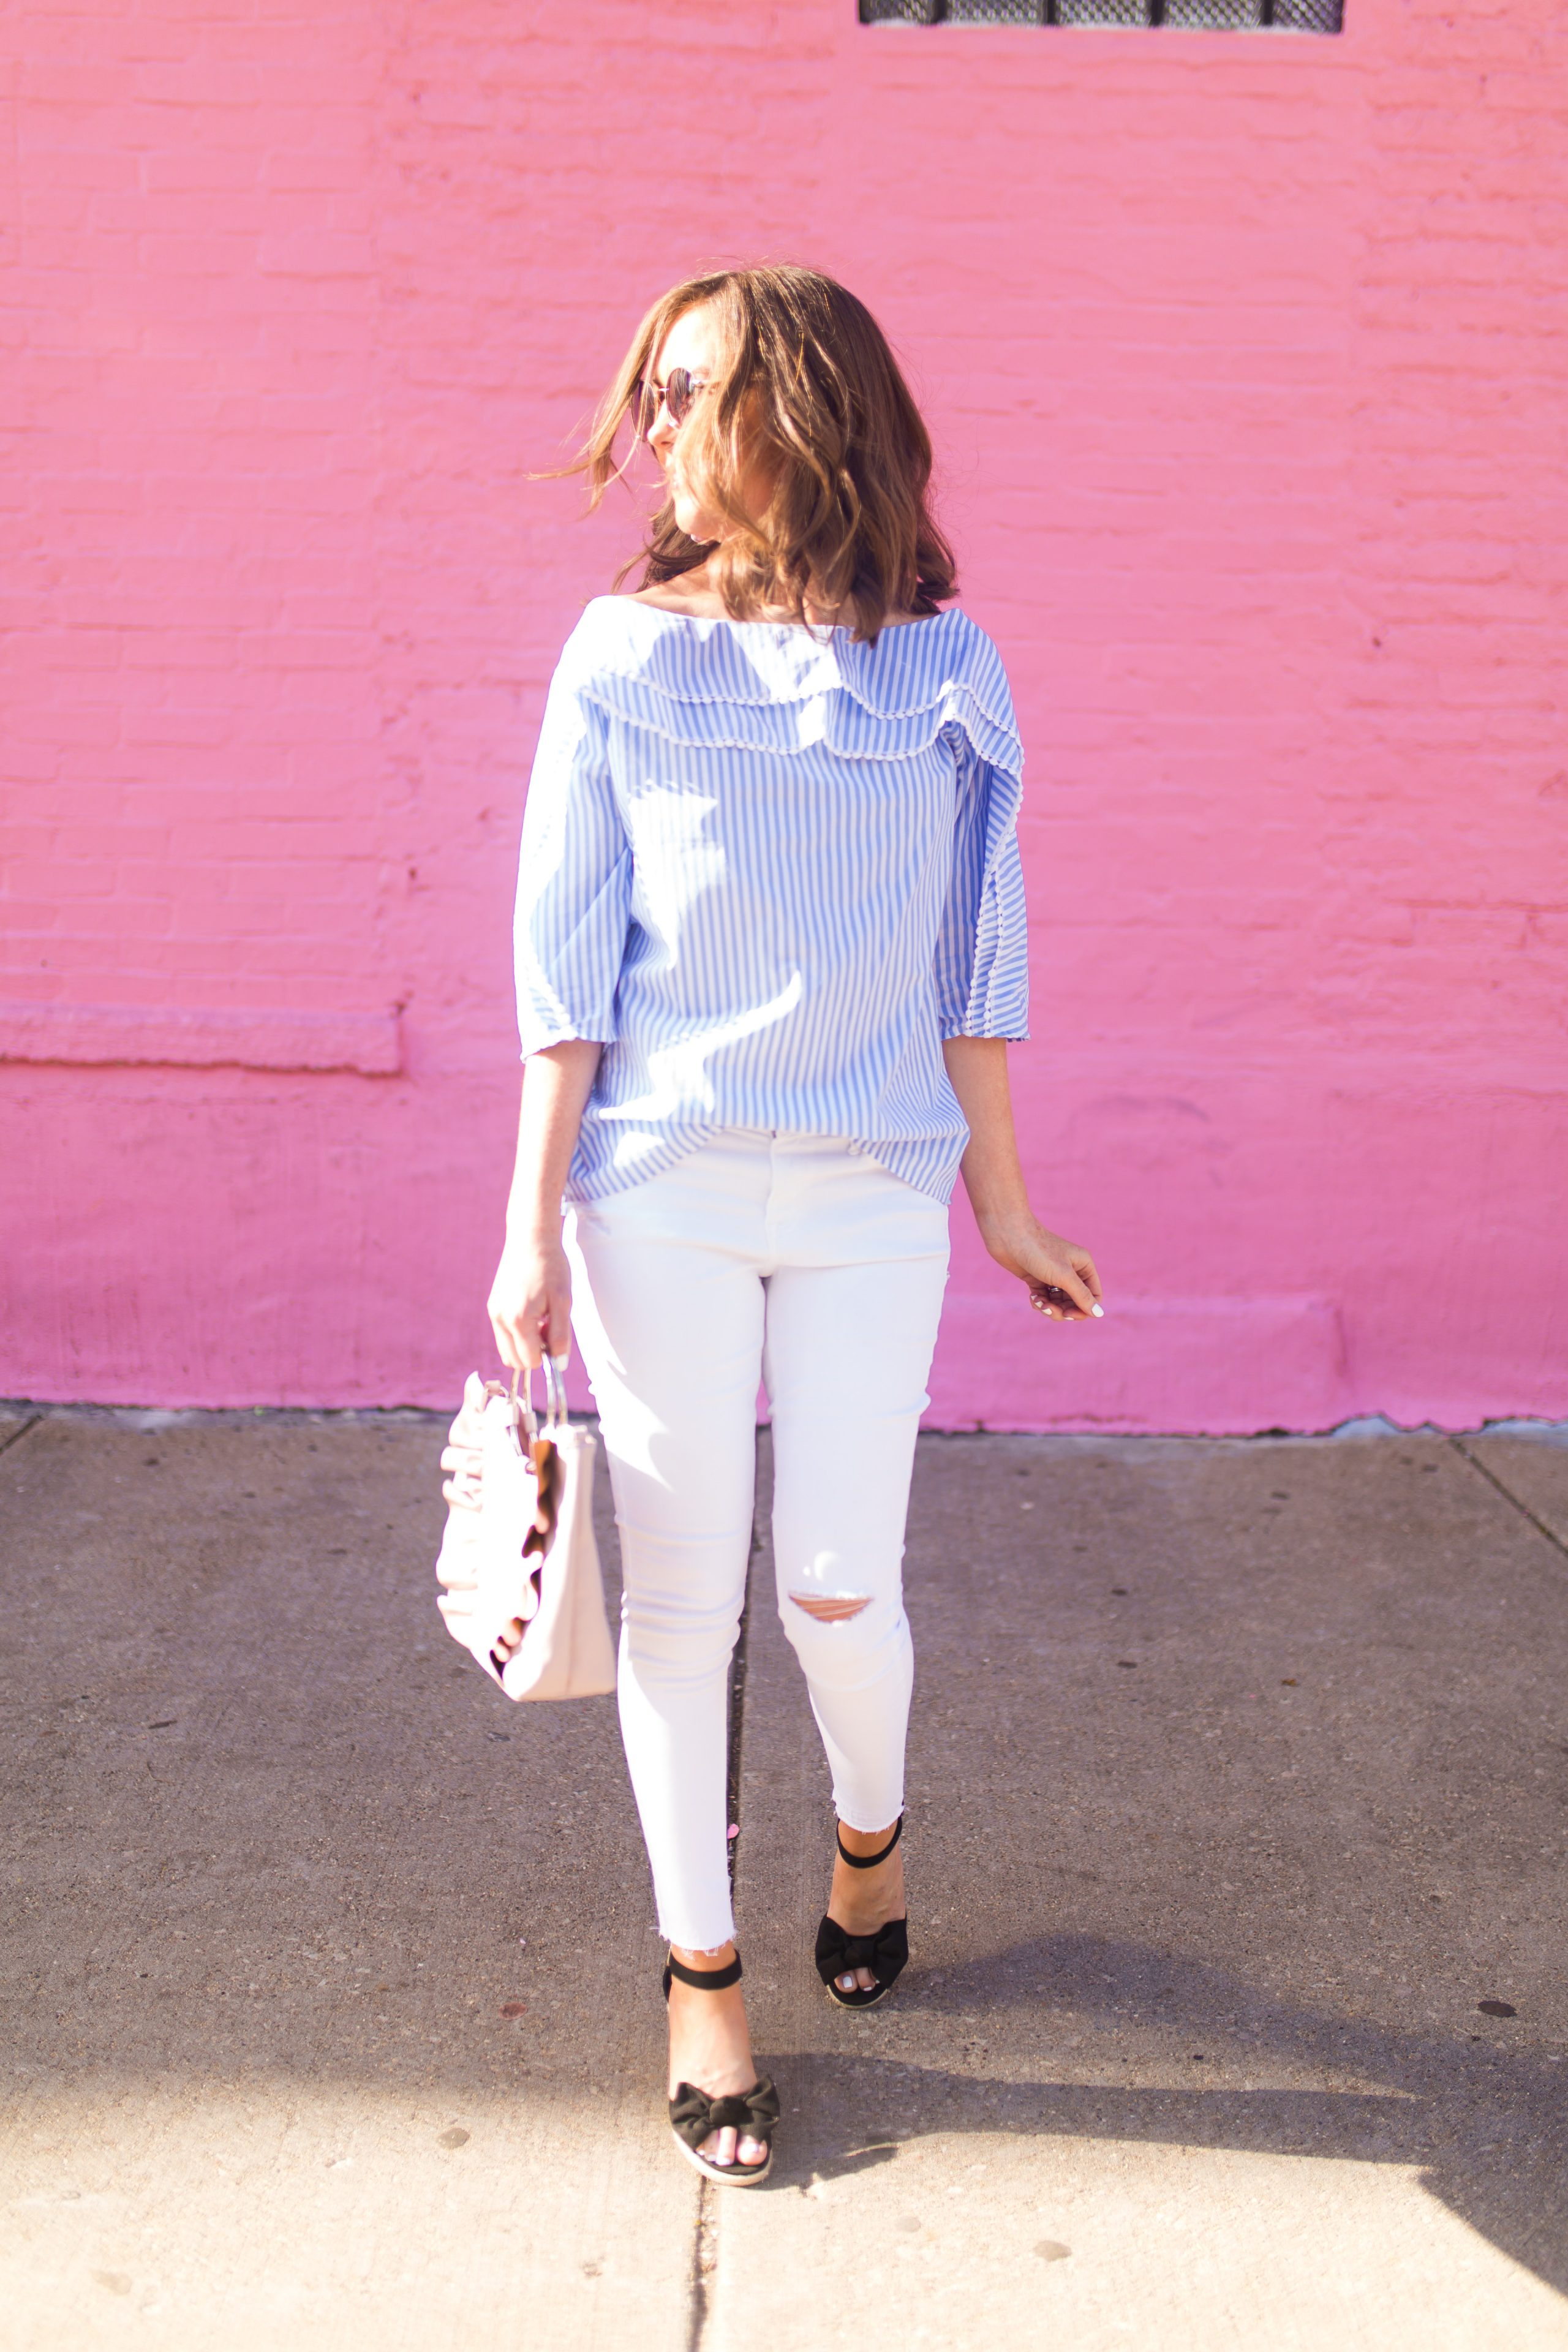 blue-white-pinstriped-off-the-shoulder-blouse-with mini-pompom-trim-pink-wall-chicago-bow-wedges-ruffled-pink bag-with-ring-handle